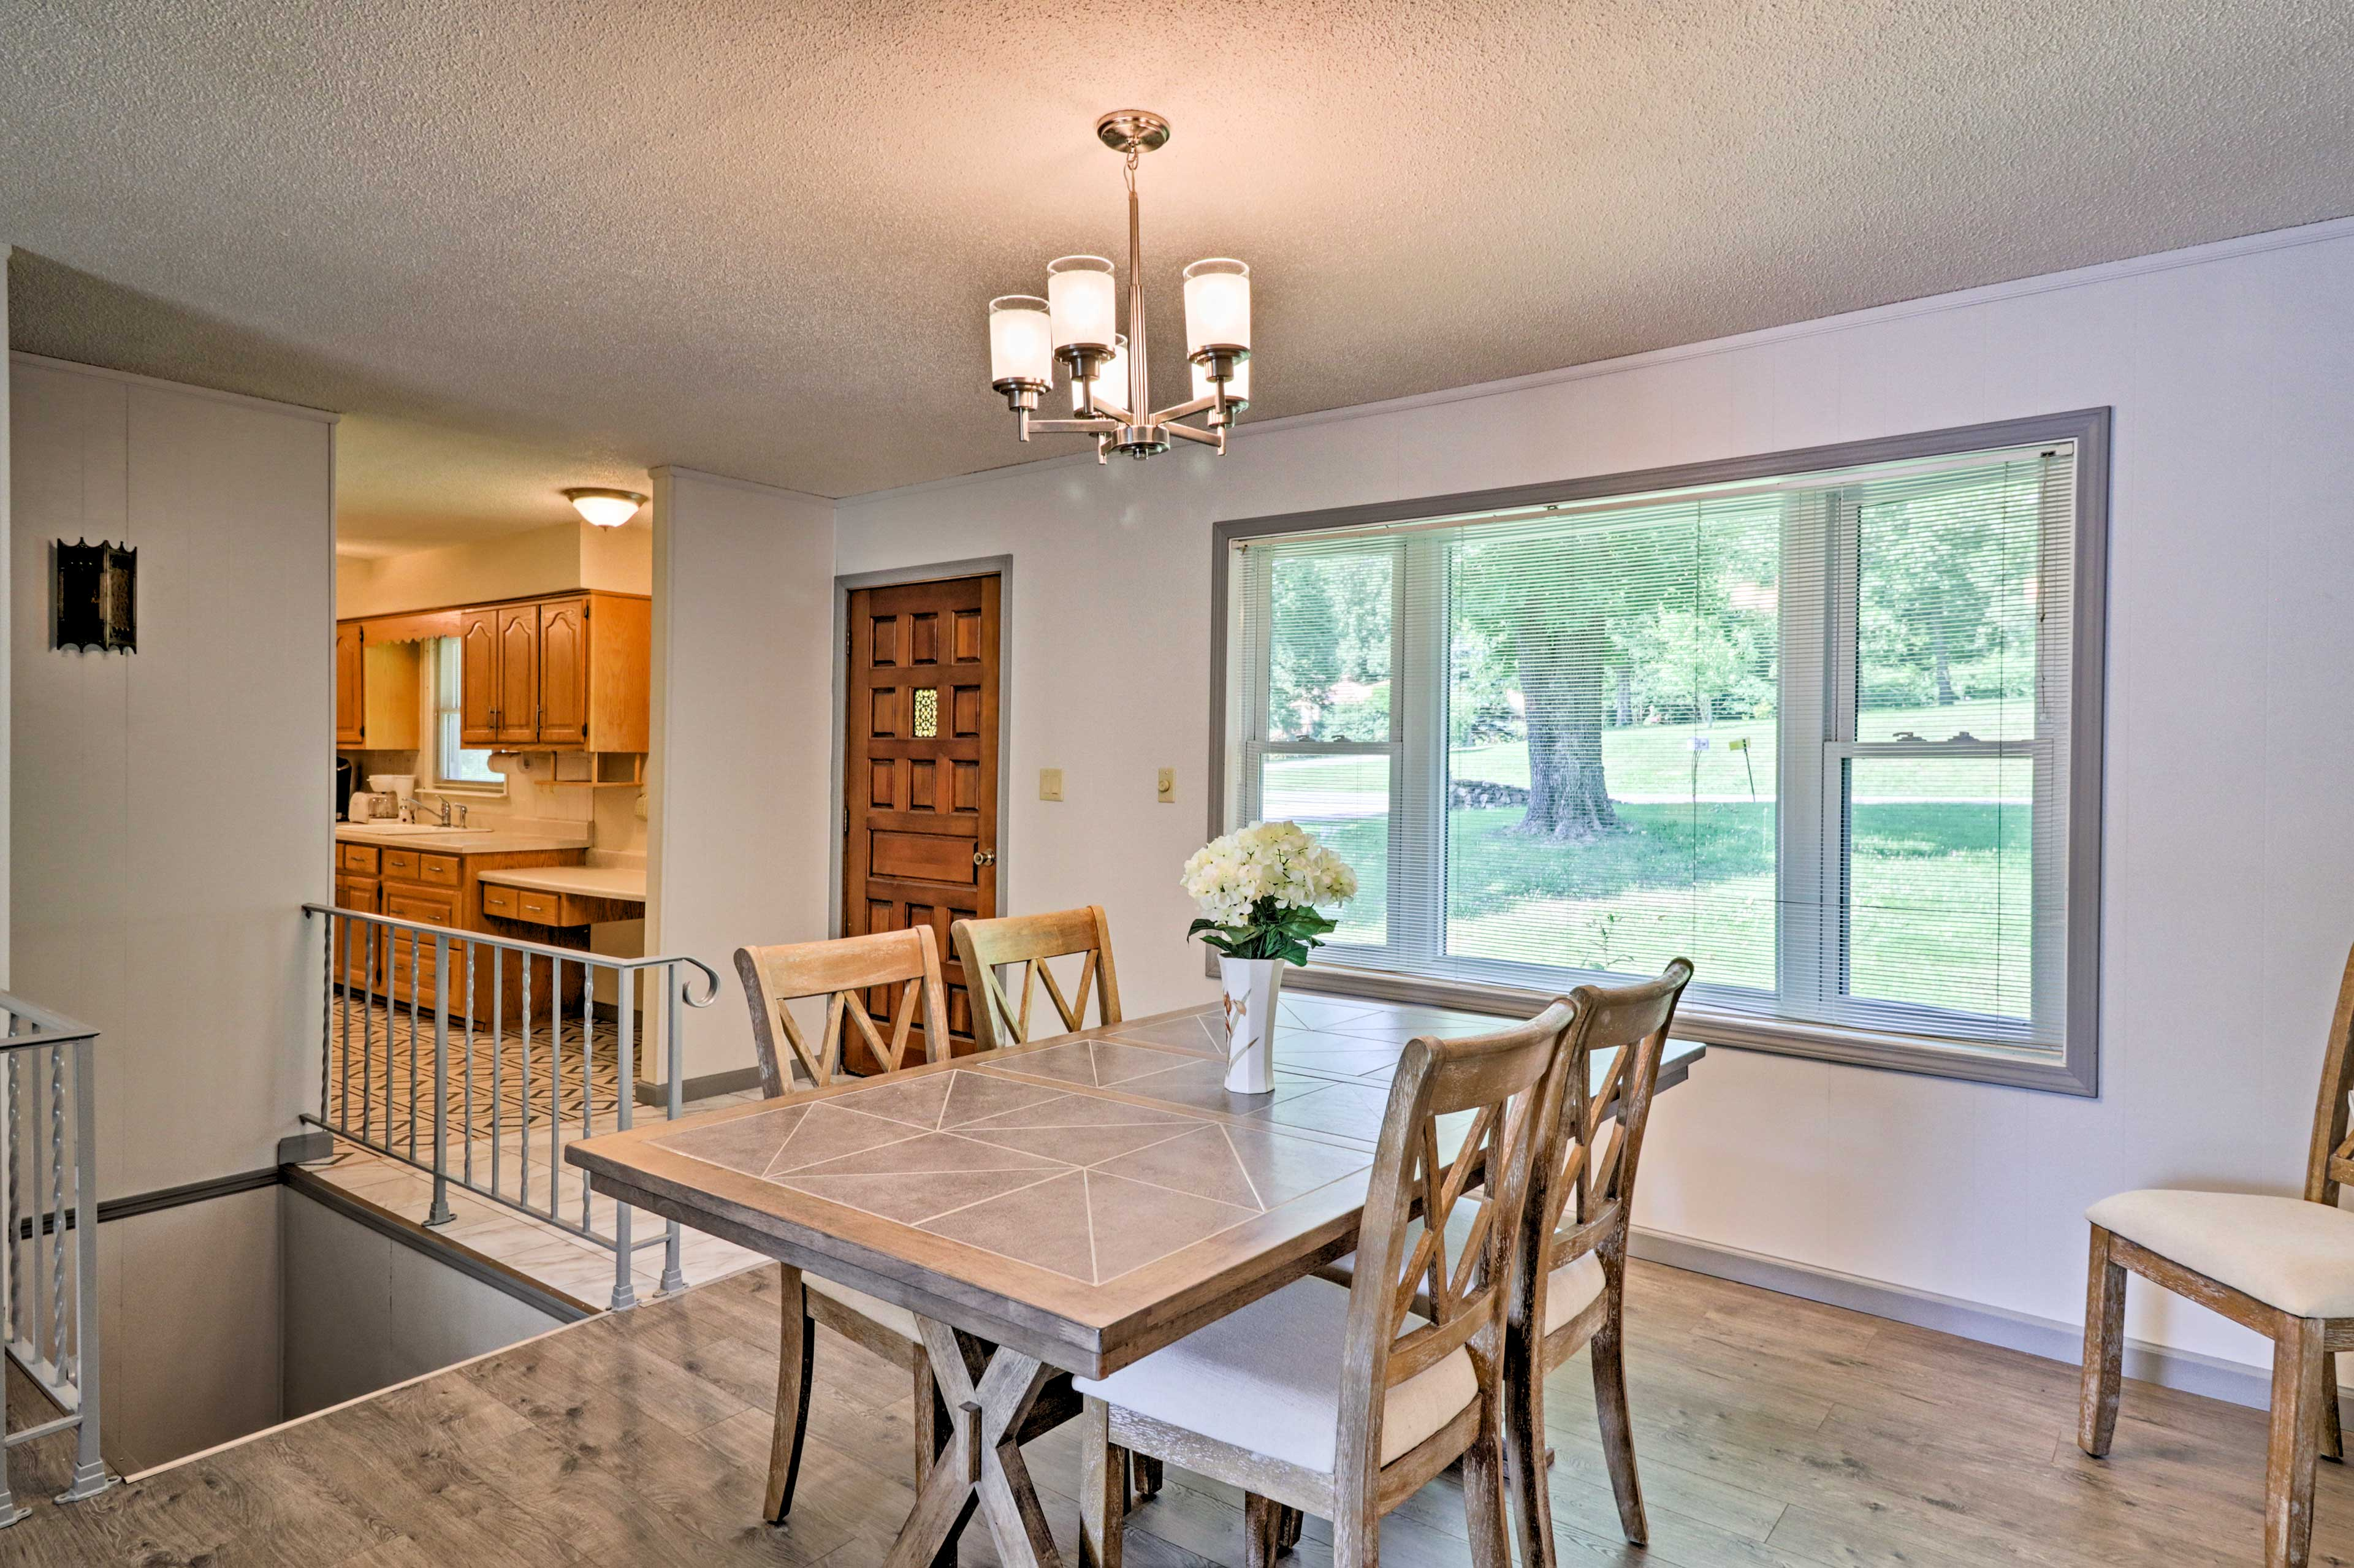 Enjoy feasts with friends at the lovely dining table.